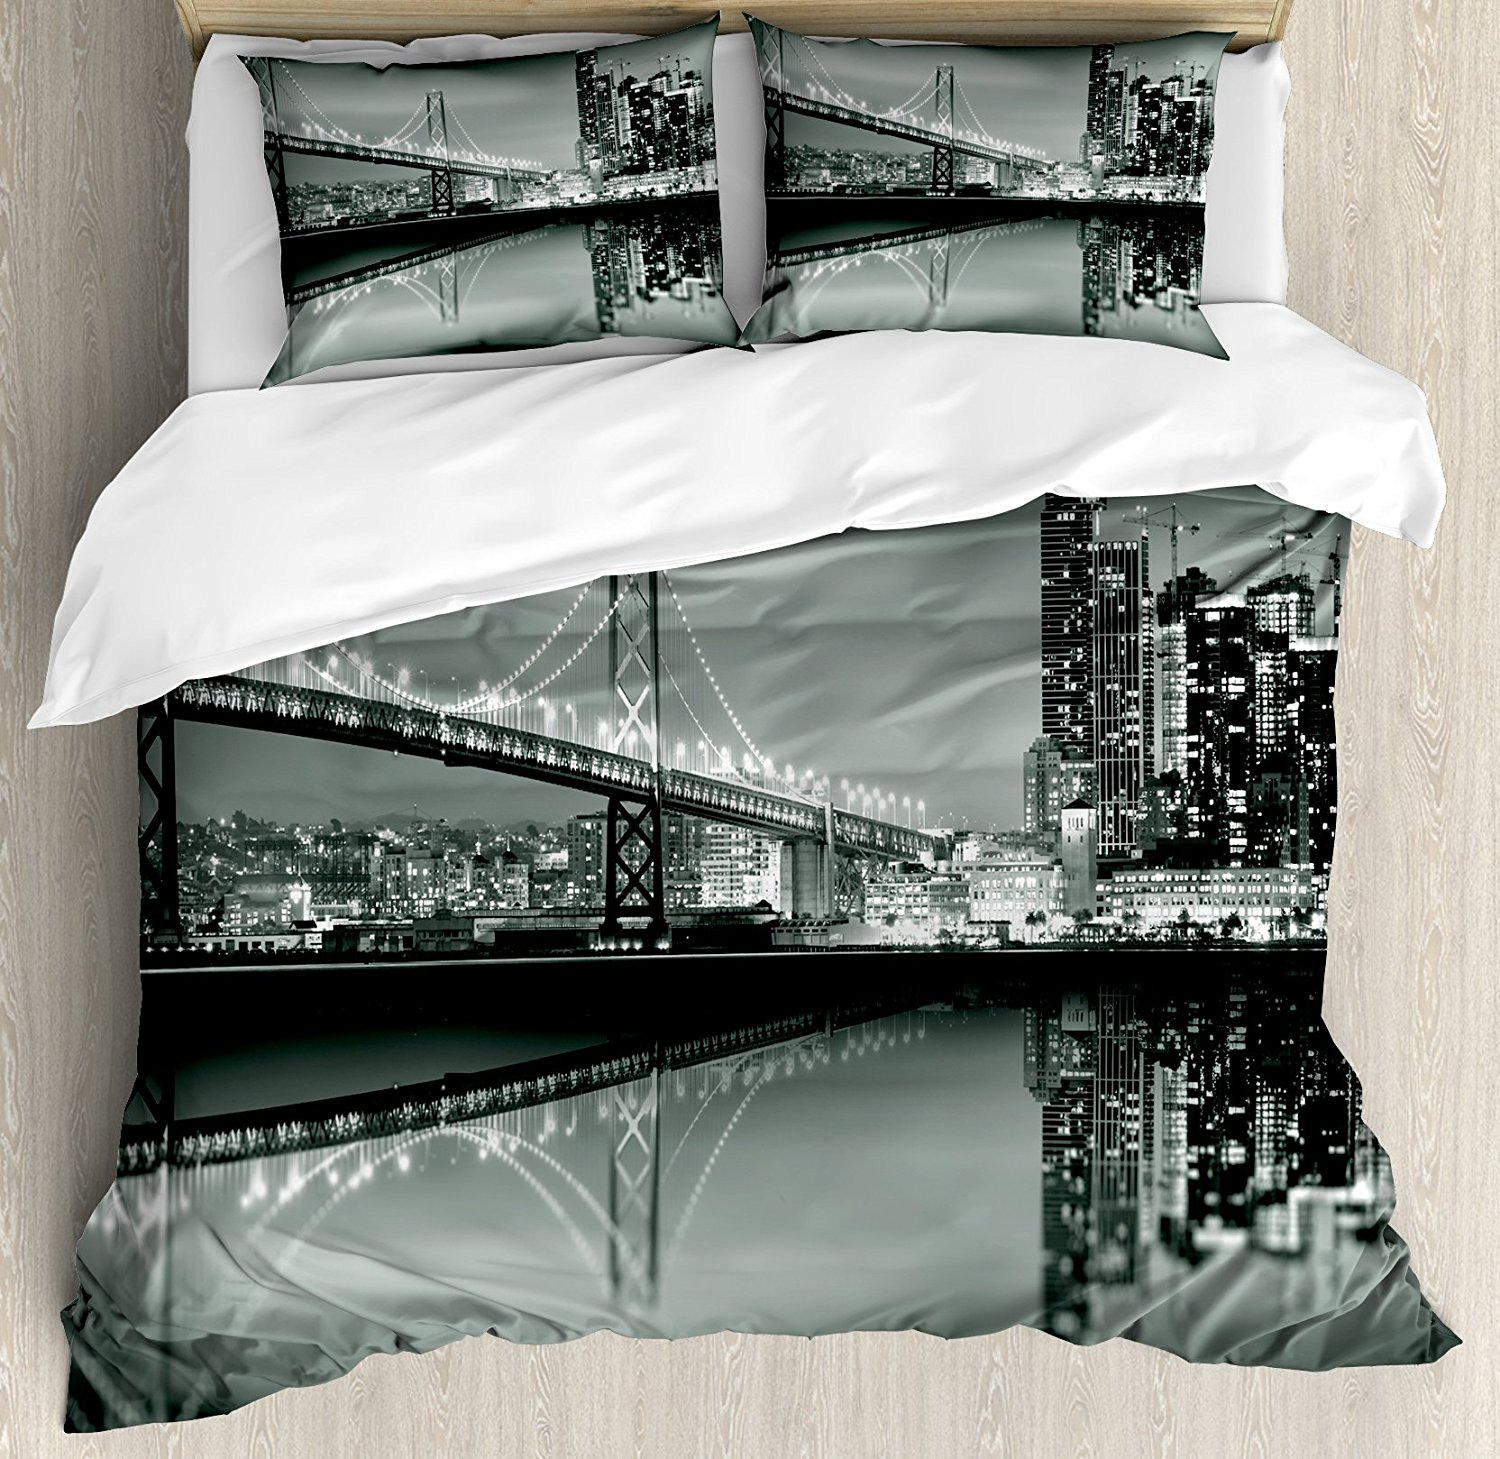 Duvet Cover Set , San Francisco Bay Bridge Metropolis Panorama Skyscrapers, 4 Piece Bedding Set Black Grey White